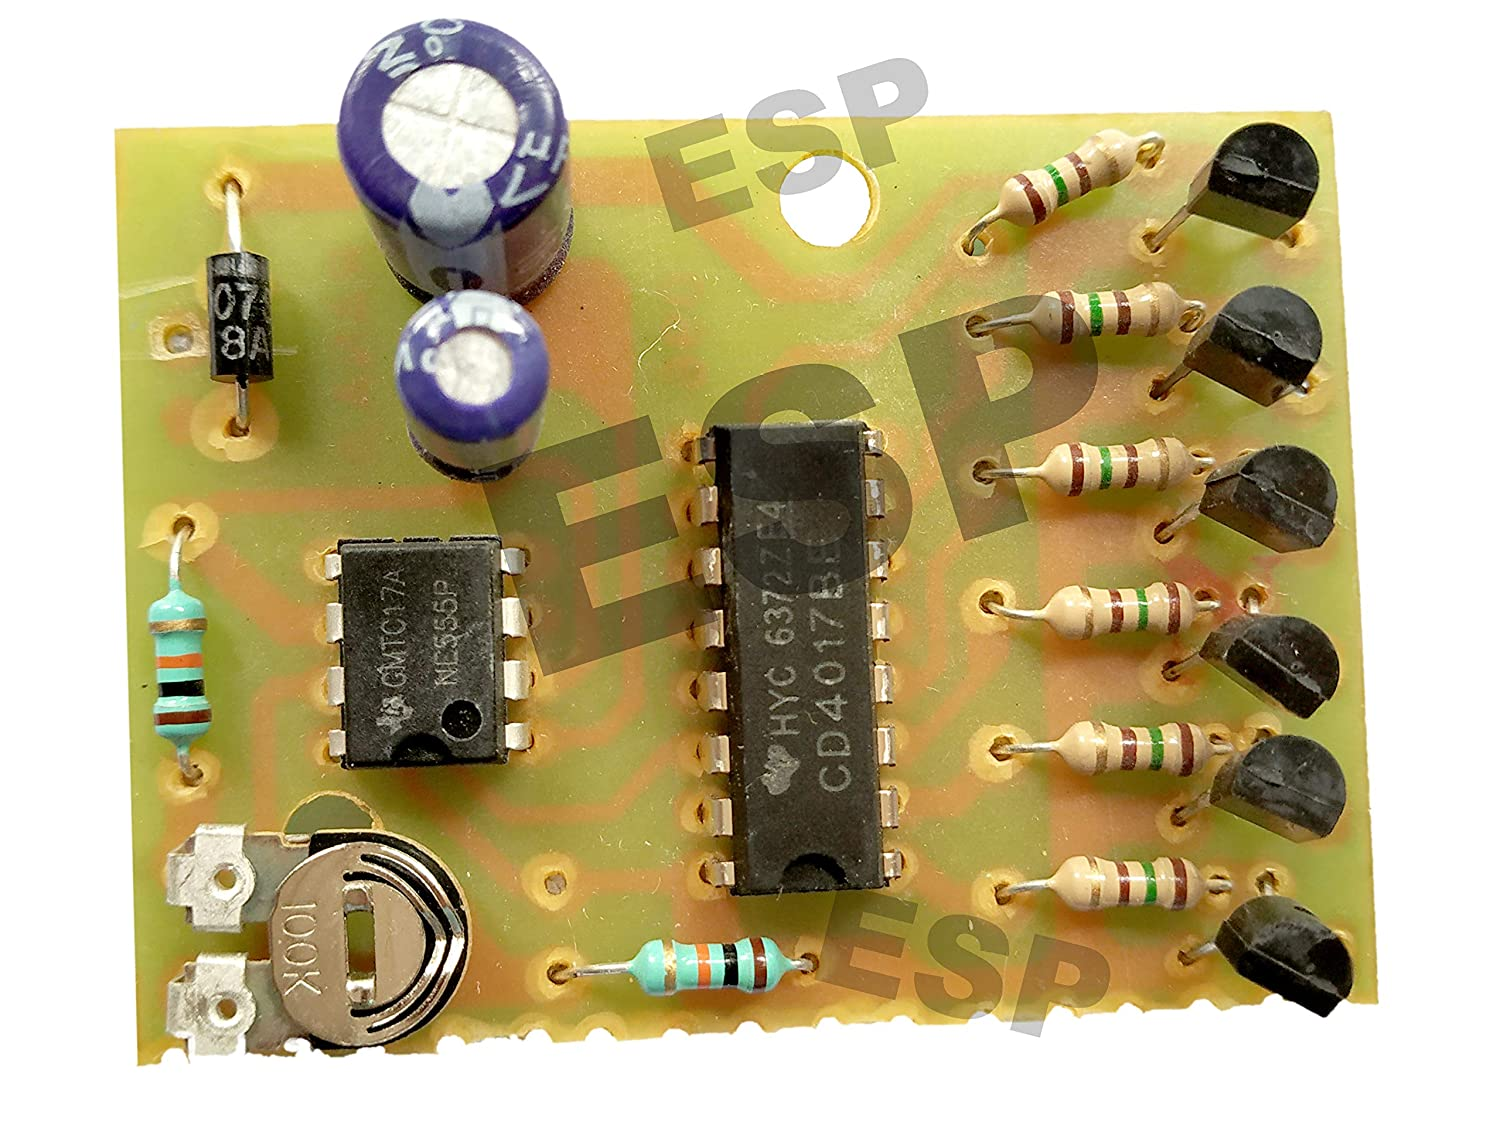 Led Chaser Circuit Running Light Decad Counter For Home 555 Electronic Projects Cd4017 Timer Industrial Scientific